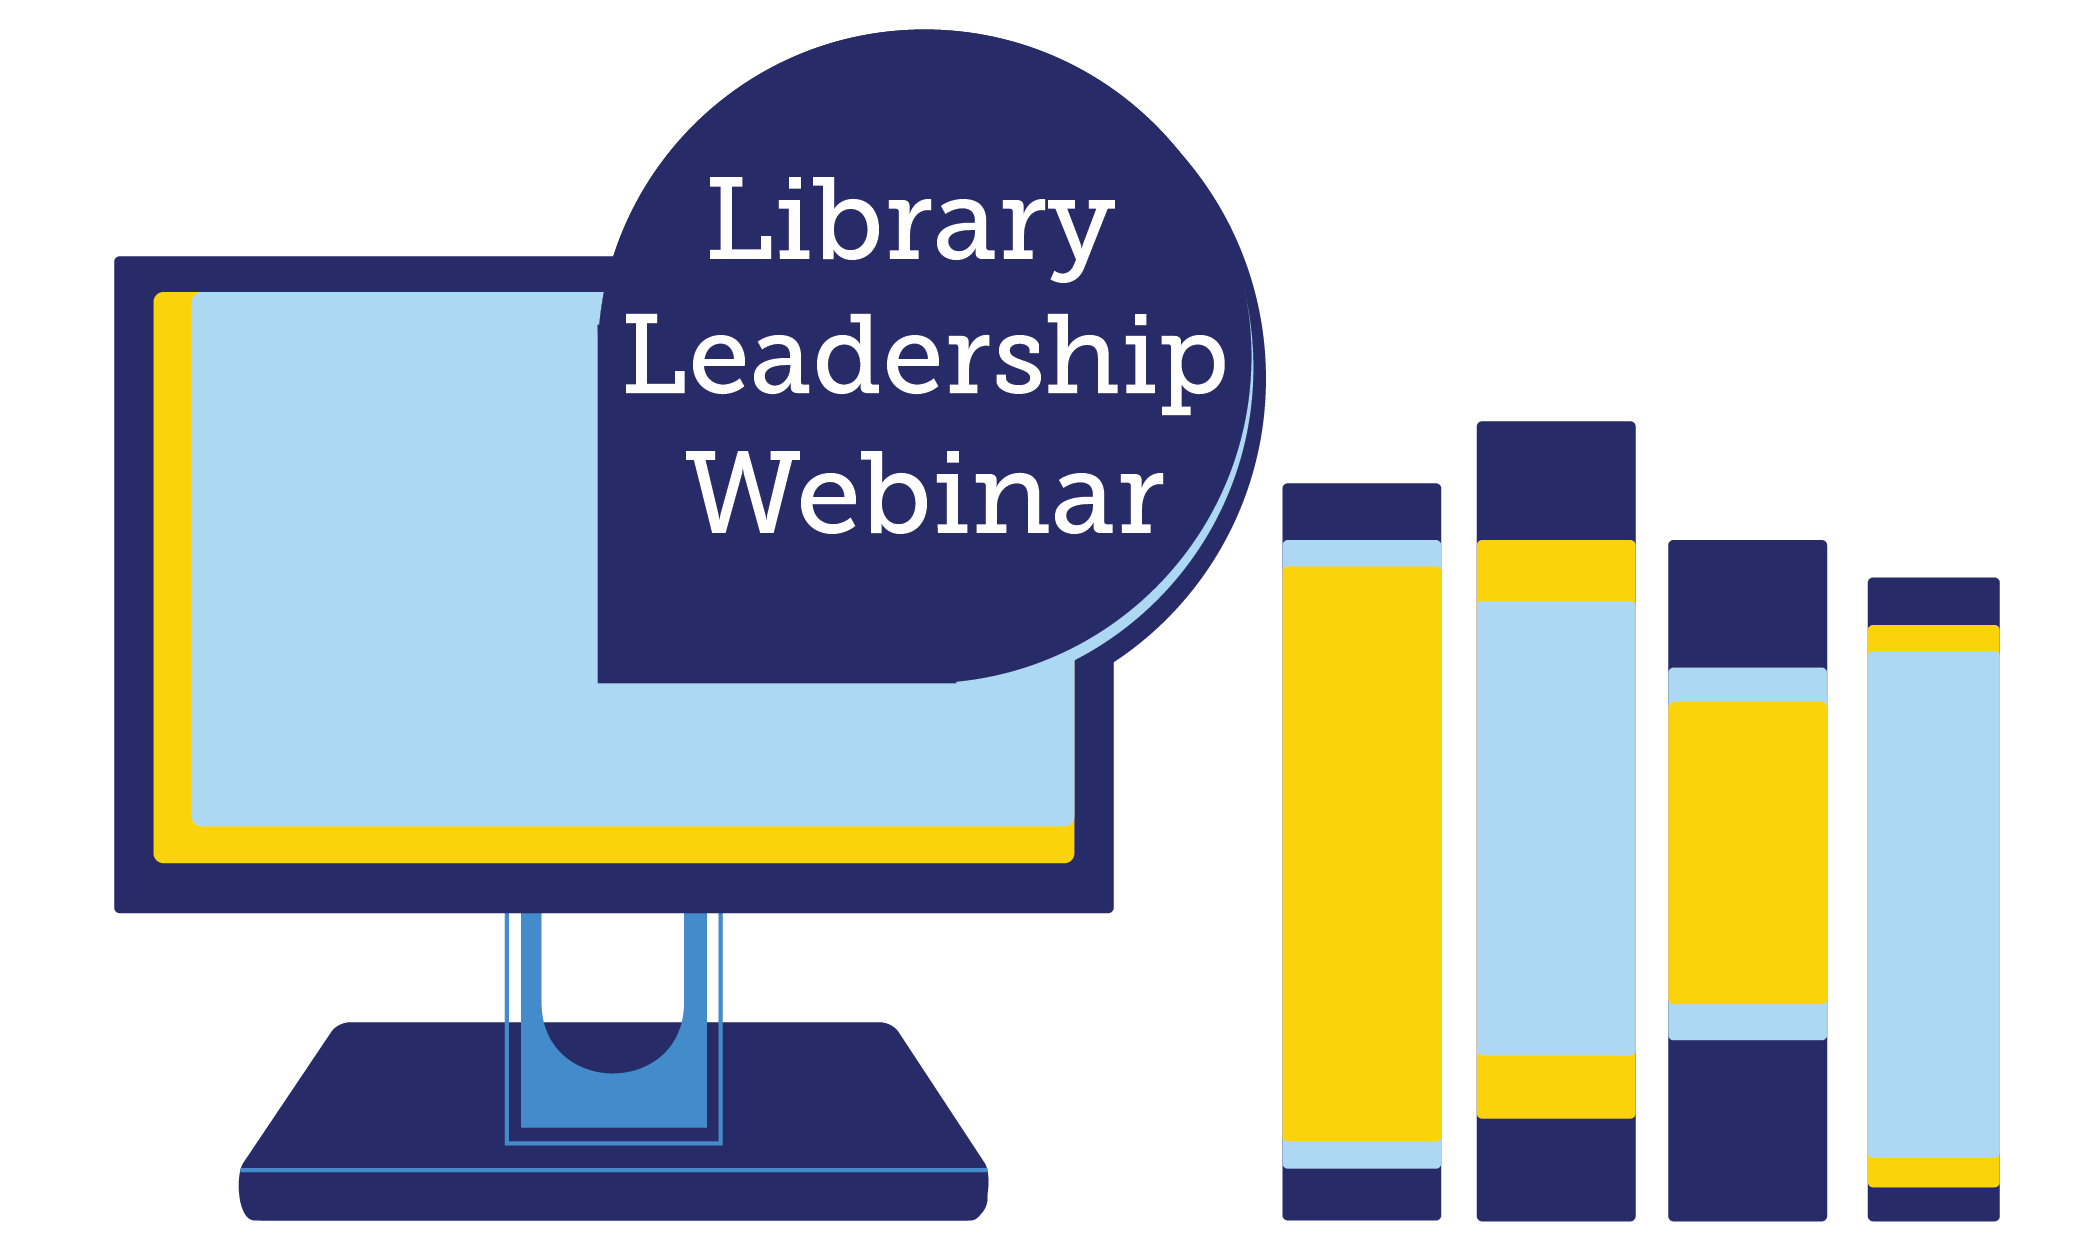 Library Leadership Webinar: The Community Centered Library